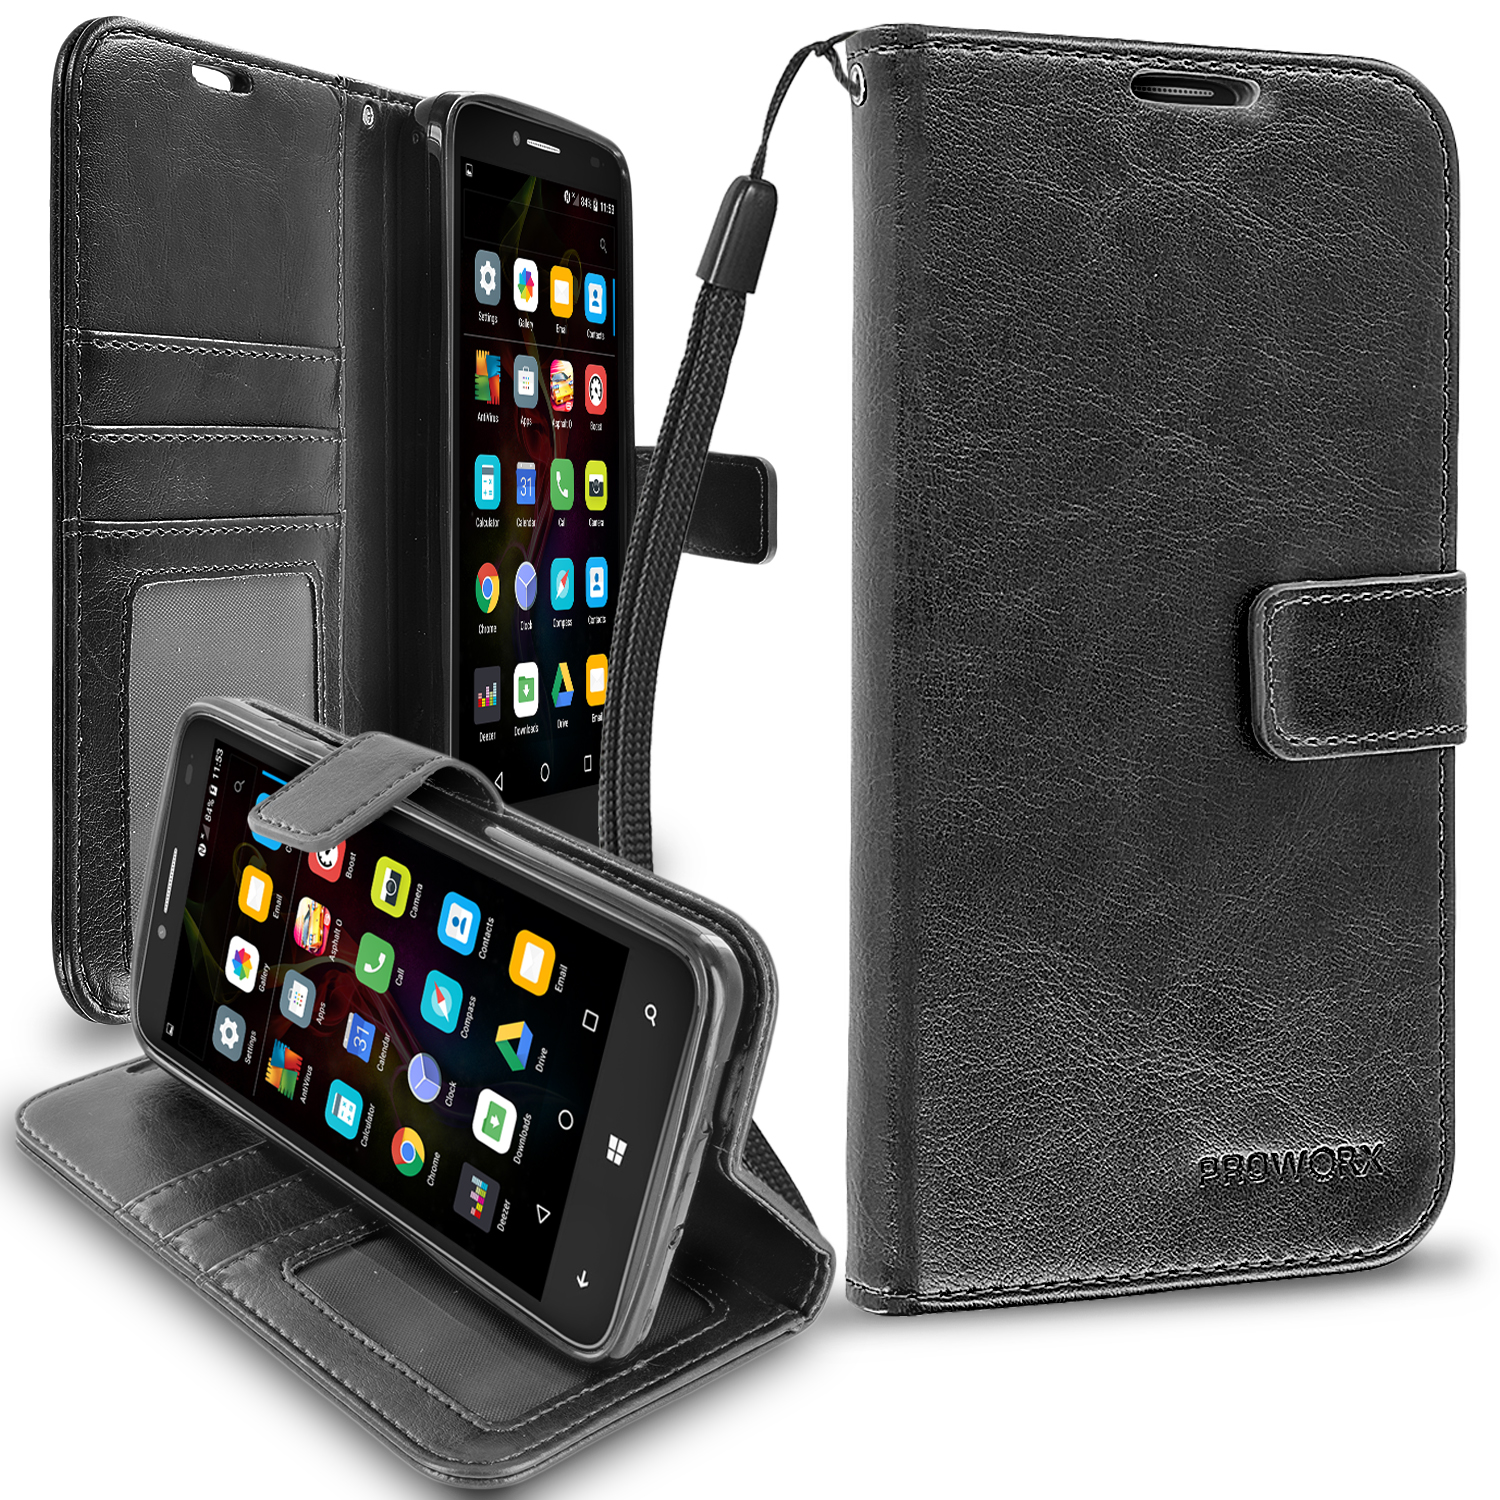 Alcatel OneTouch Fierce XL Black ProWorx Wallet Case Luxury PU Leather Case Cover With Card Slots & Stand